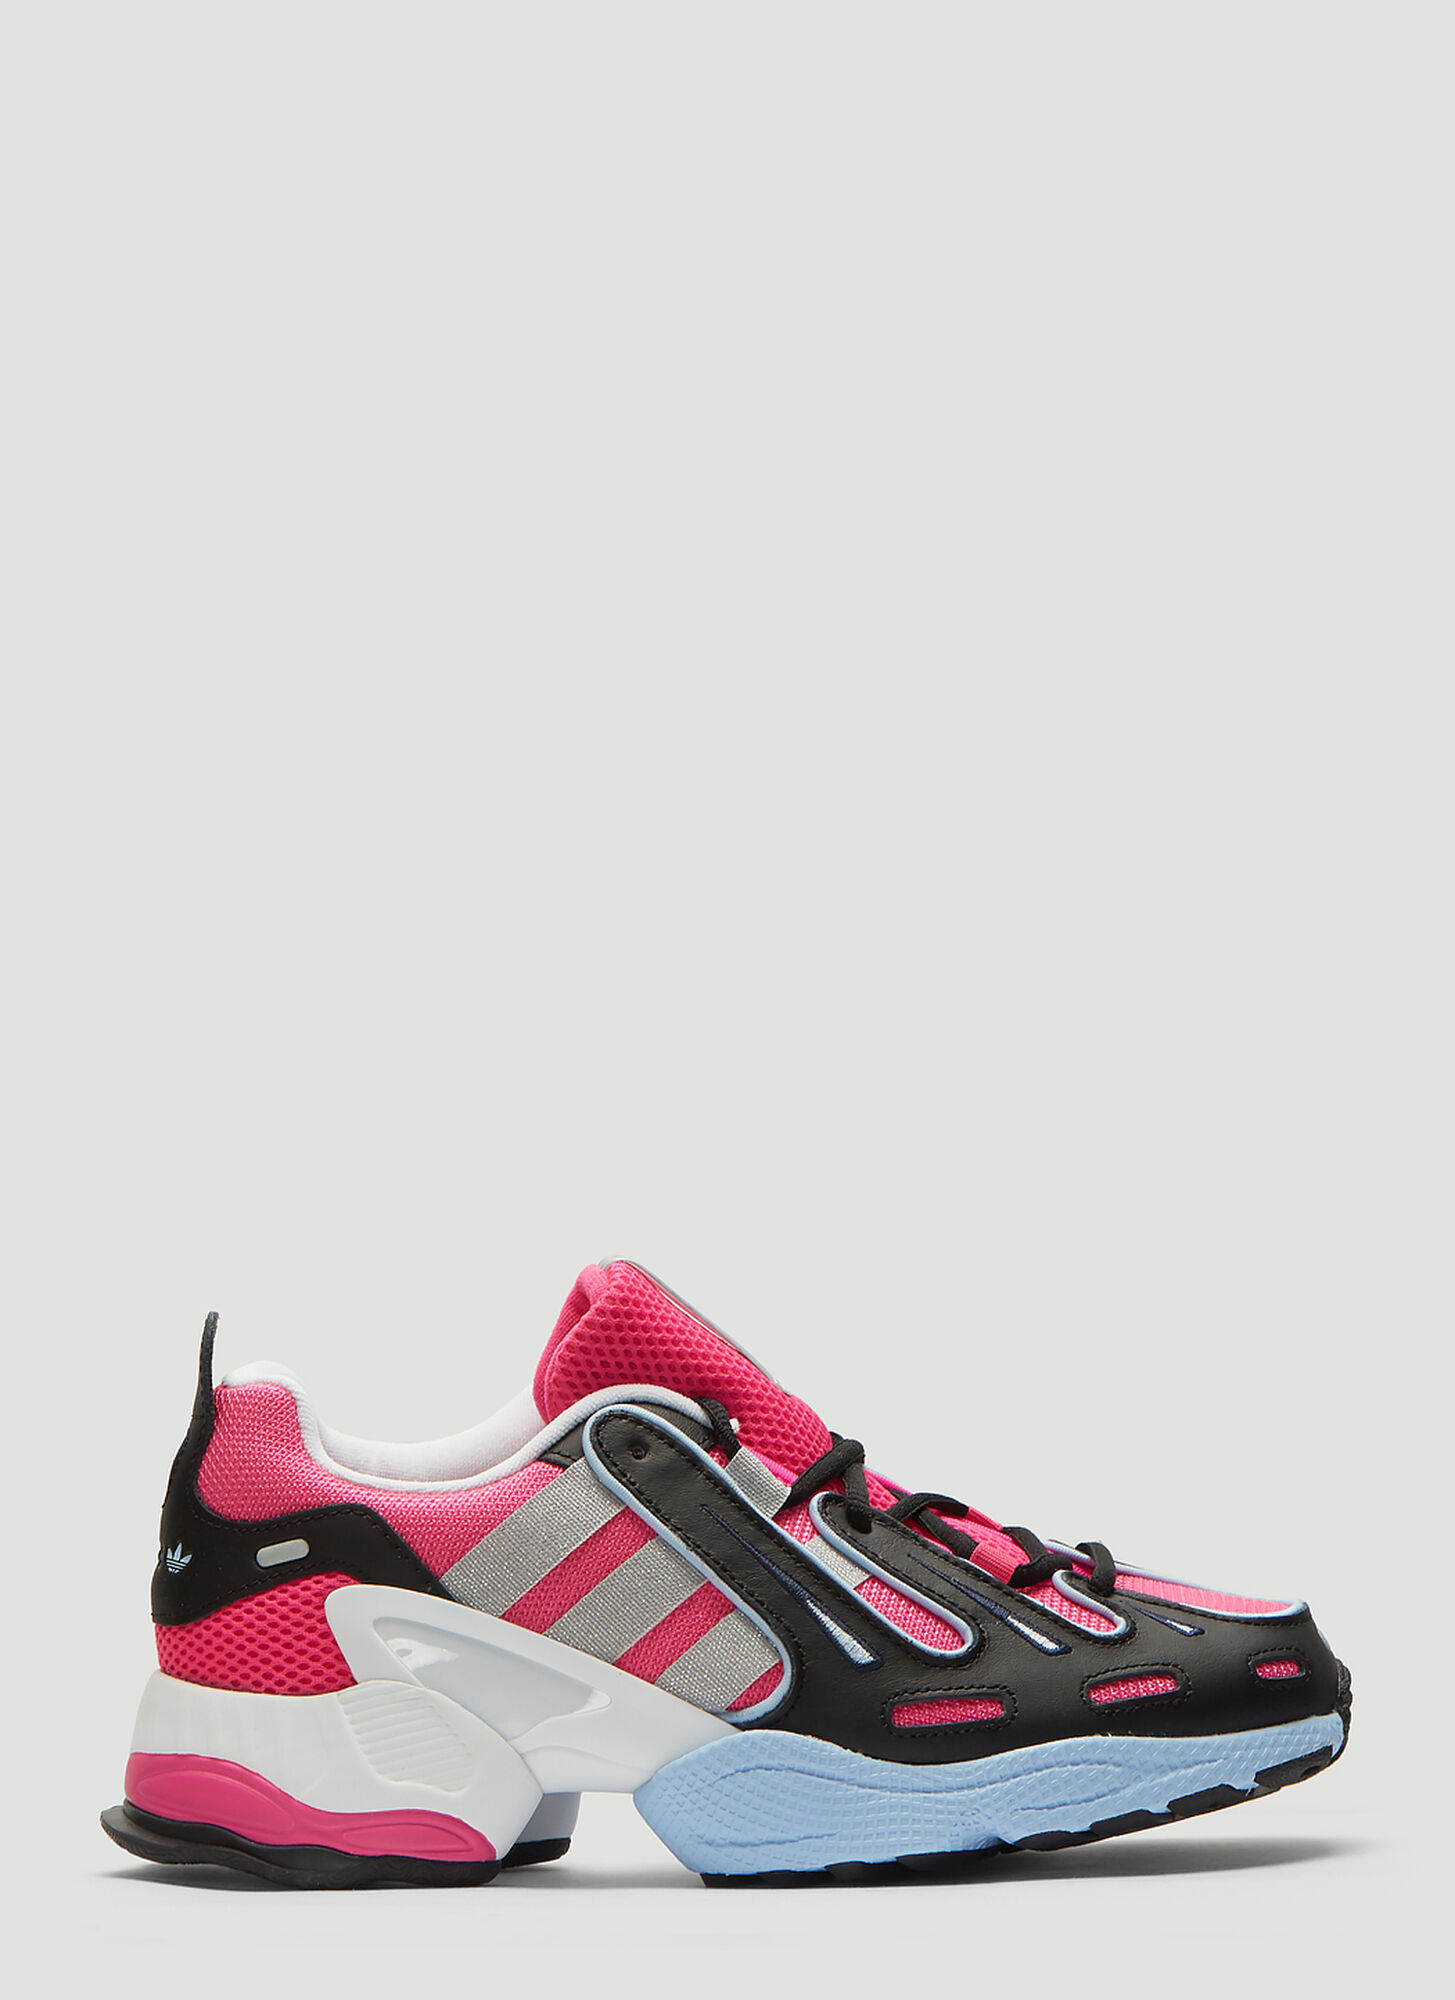 Adidas EQT Gazelle Sneakers in Pink